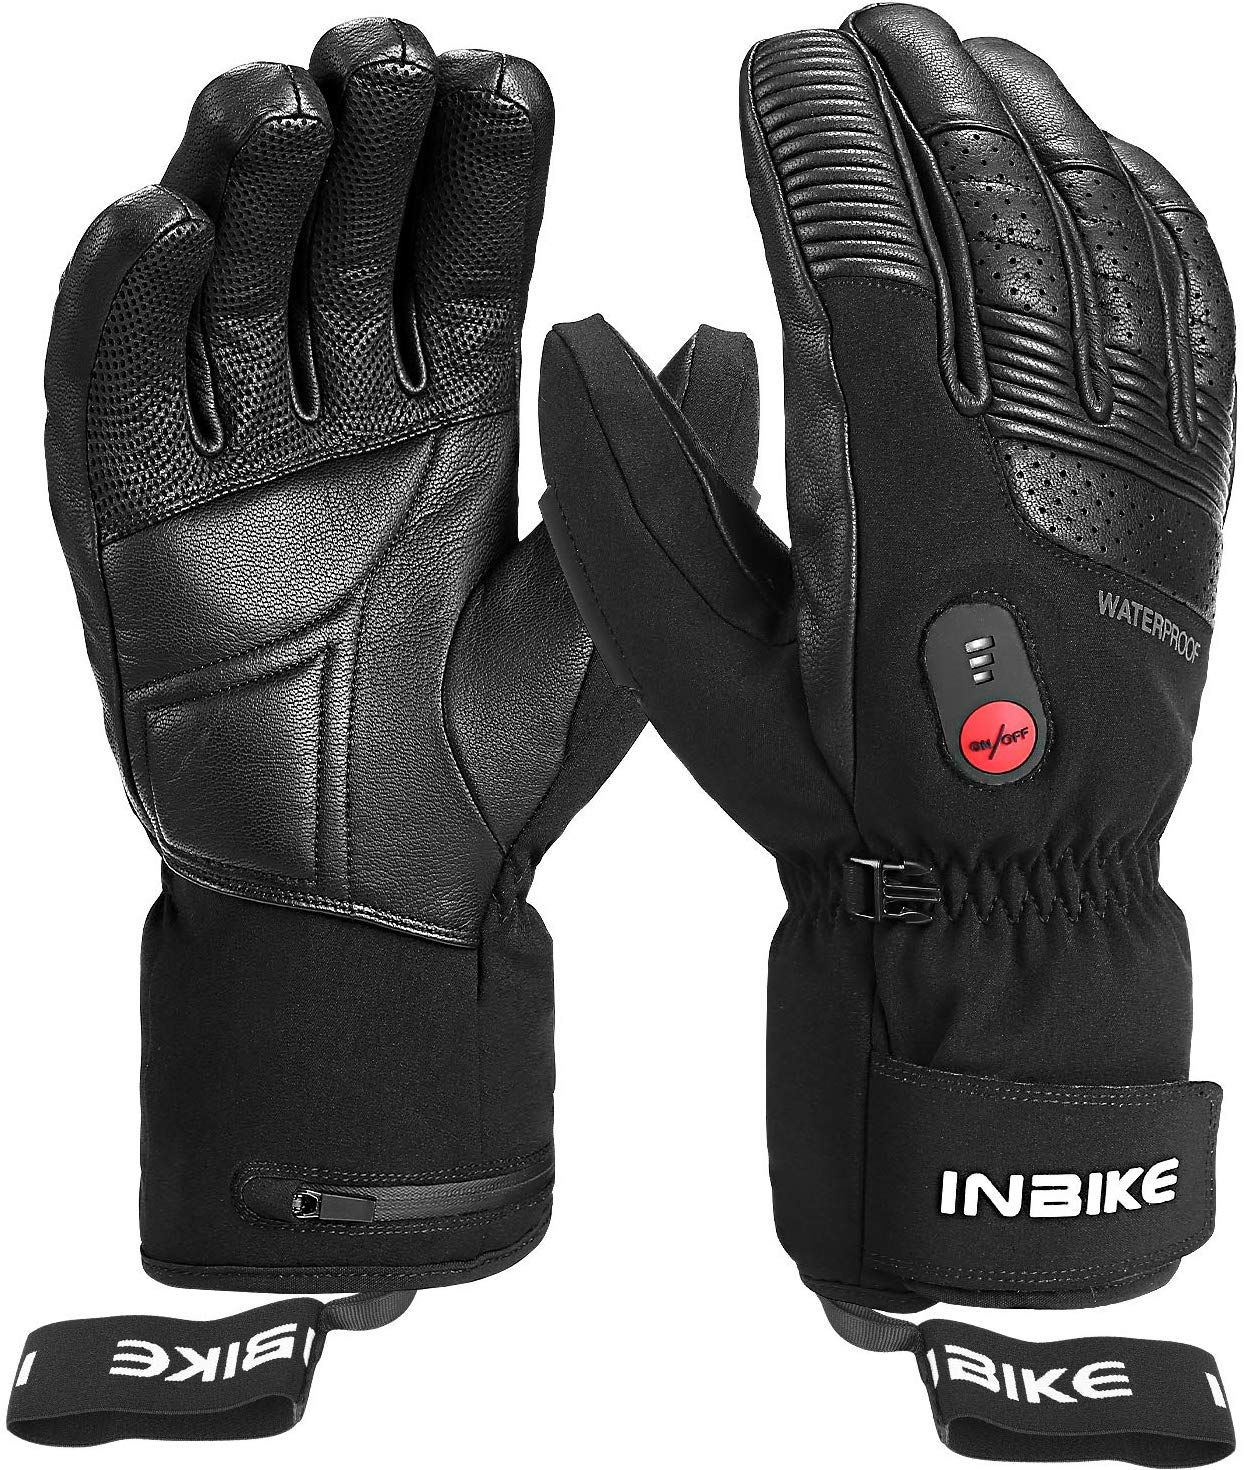 Amazon Com Inbike Heated Gloves Winter Motorcycle Gloves 7 4v 2200 Mah Electric Rechargable Battery 3 Level Warm Gloves Heated Gloves Winter Motorcycle Gloves